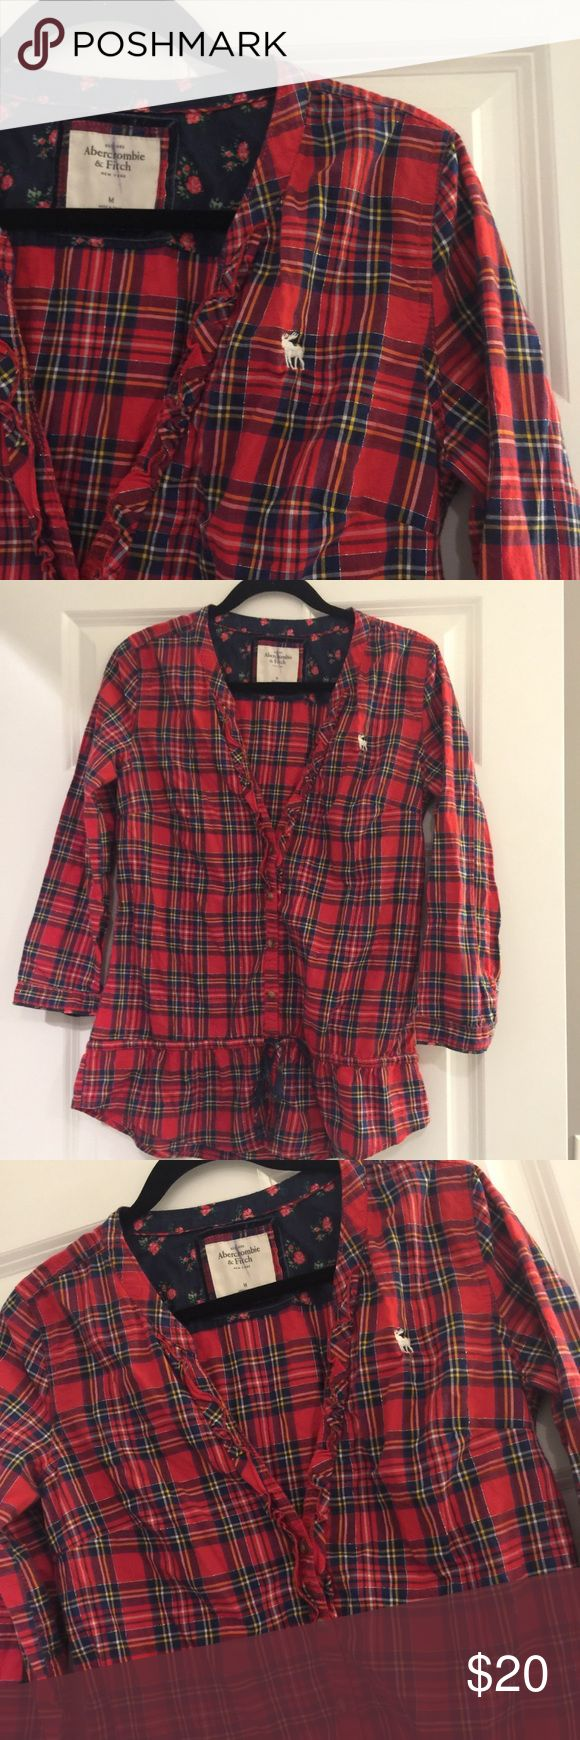 Abercrombie and Fitch Red Plaid Button Up Top. Has a tie around waist for a cute girly look on a plaid shit! Only thing wrong with shirt is it have a marker line going through tag. Won't bleed has been washed. Smoke free home. True to size. No trades. Abercrombie & Fitch Tops Button Down Shirts